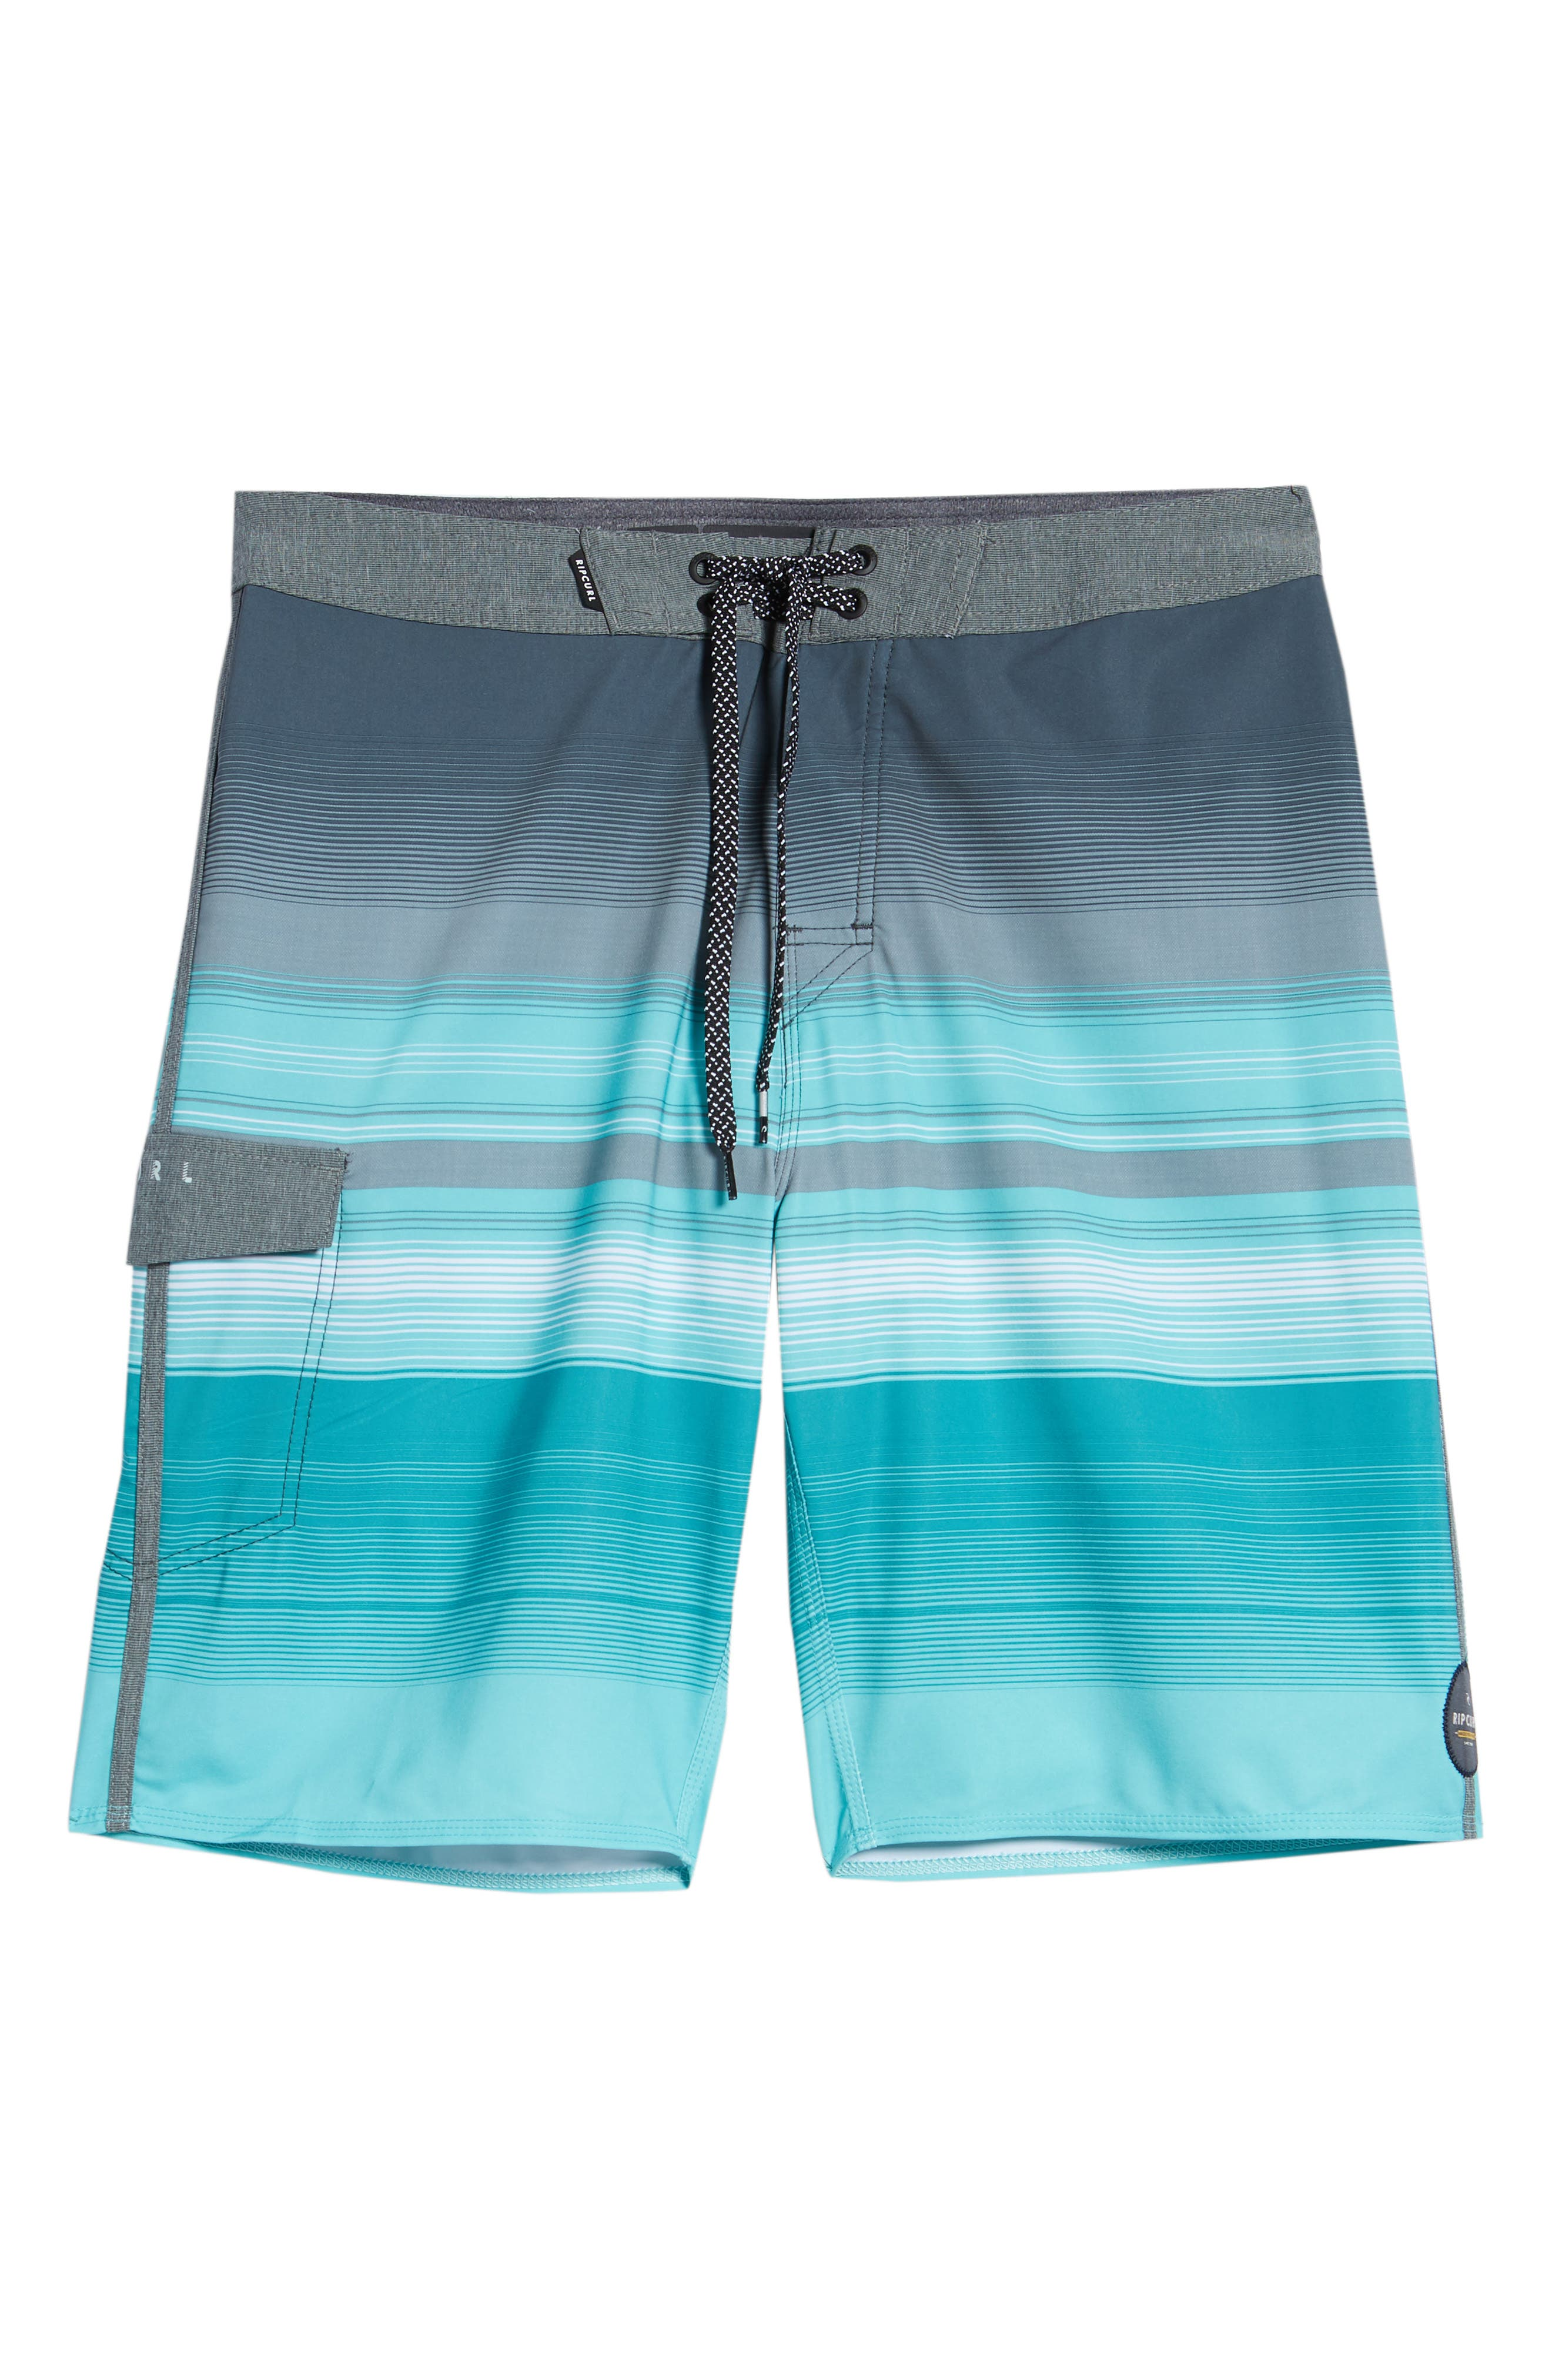 Mirage Accelerate Board Shorts,                             Alternate thumbnail 6, color,                             443